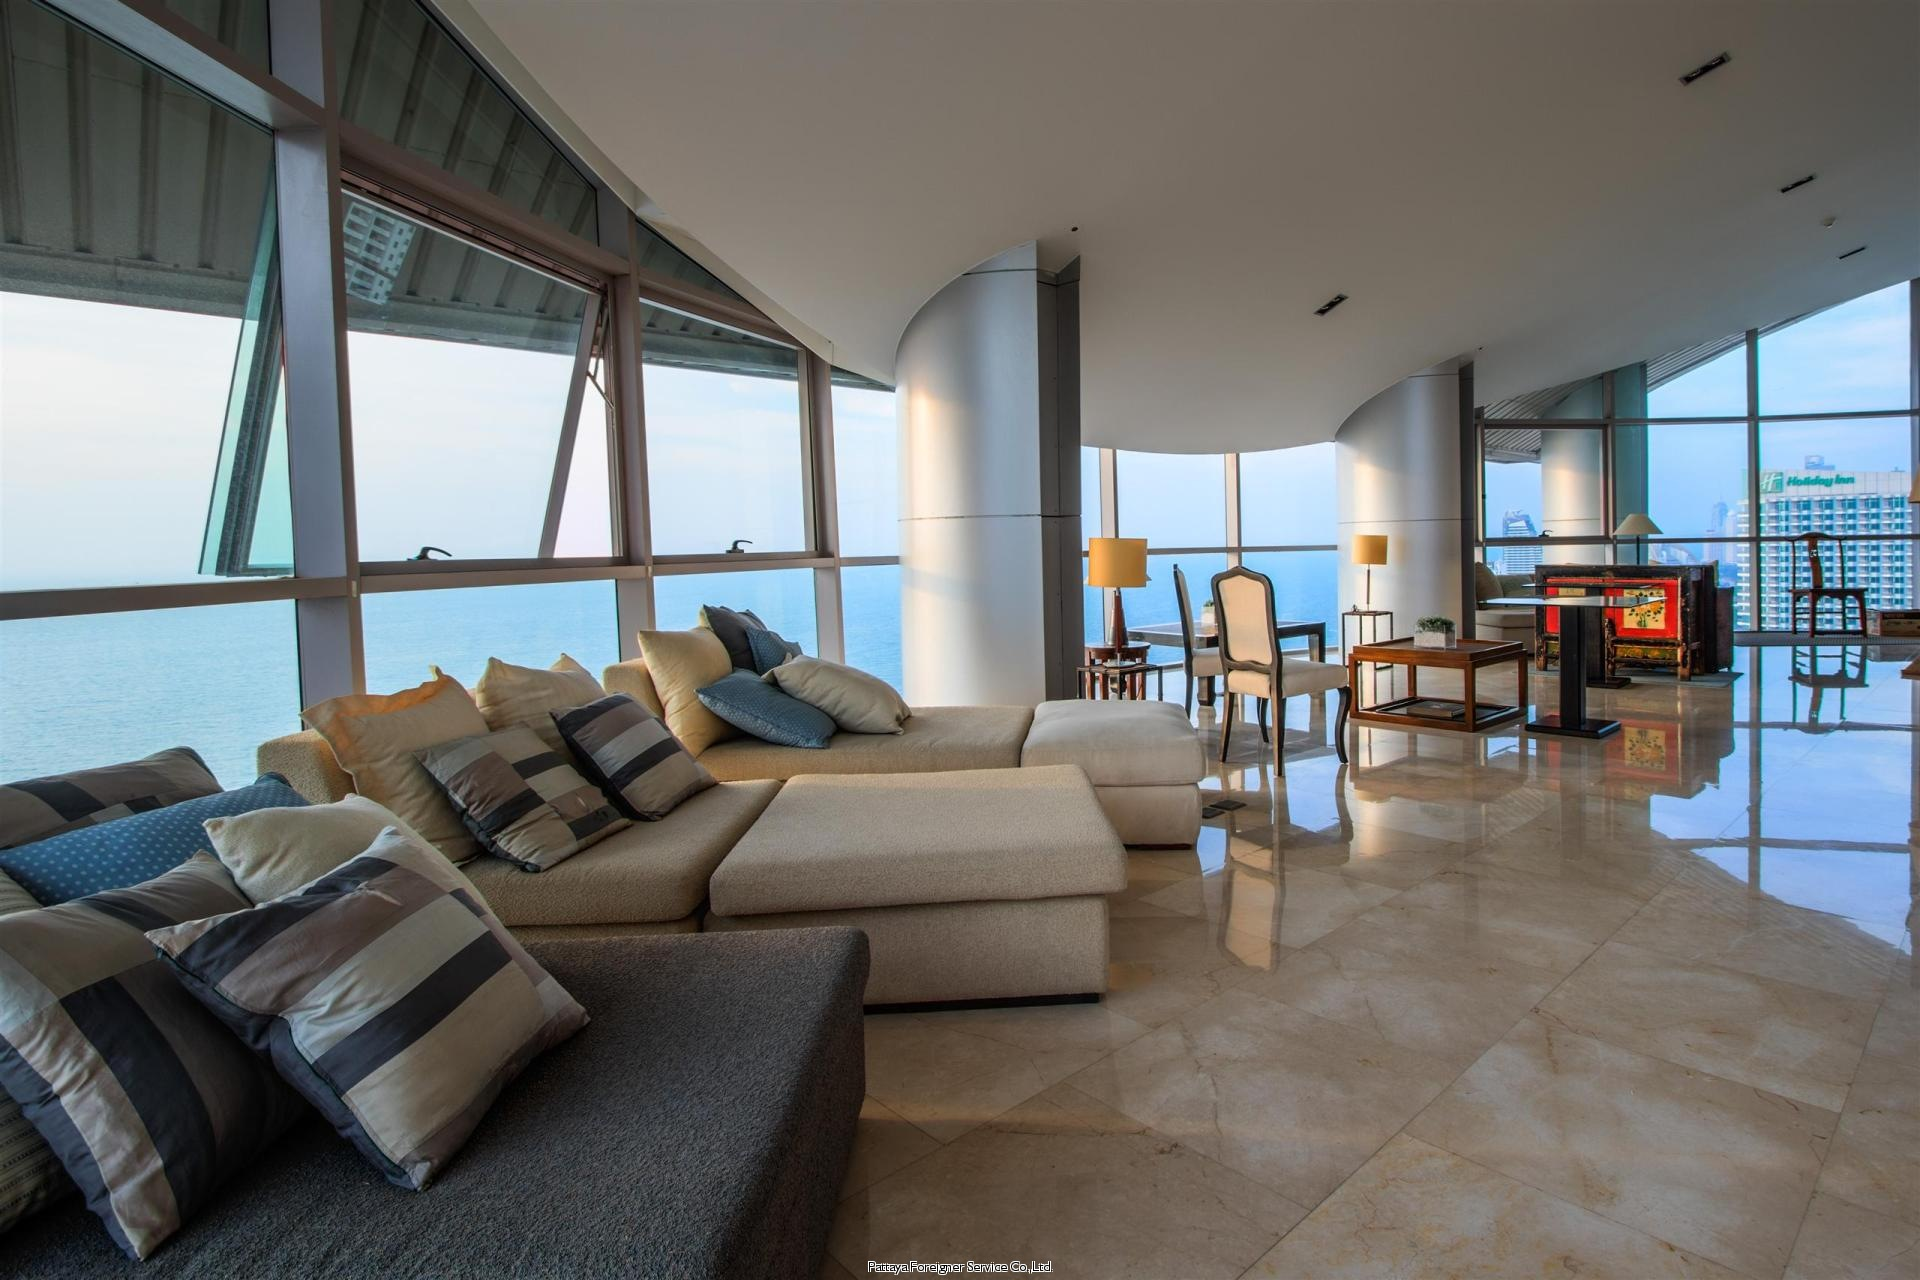 pic-8-Pattaya Foreigner Service Co.Ltd. the most amazing penthouse in pattaya Condominiums for sale in North Pattaya Pattaya